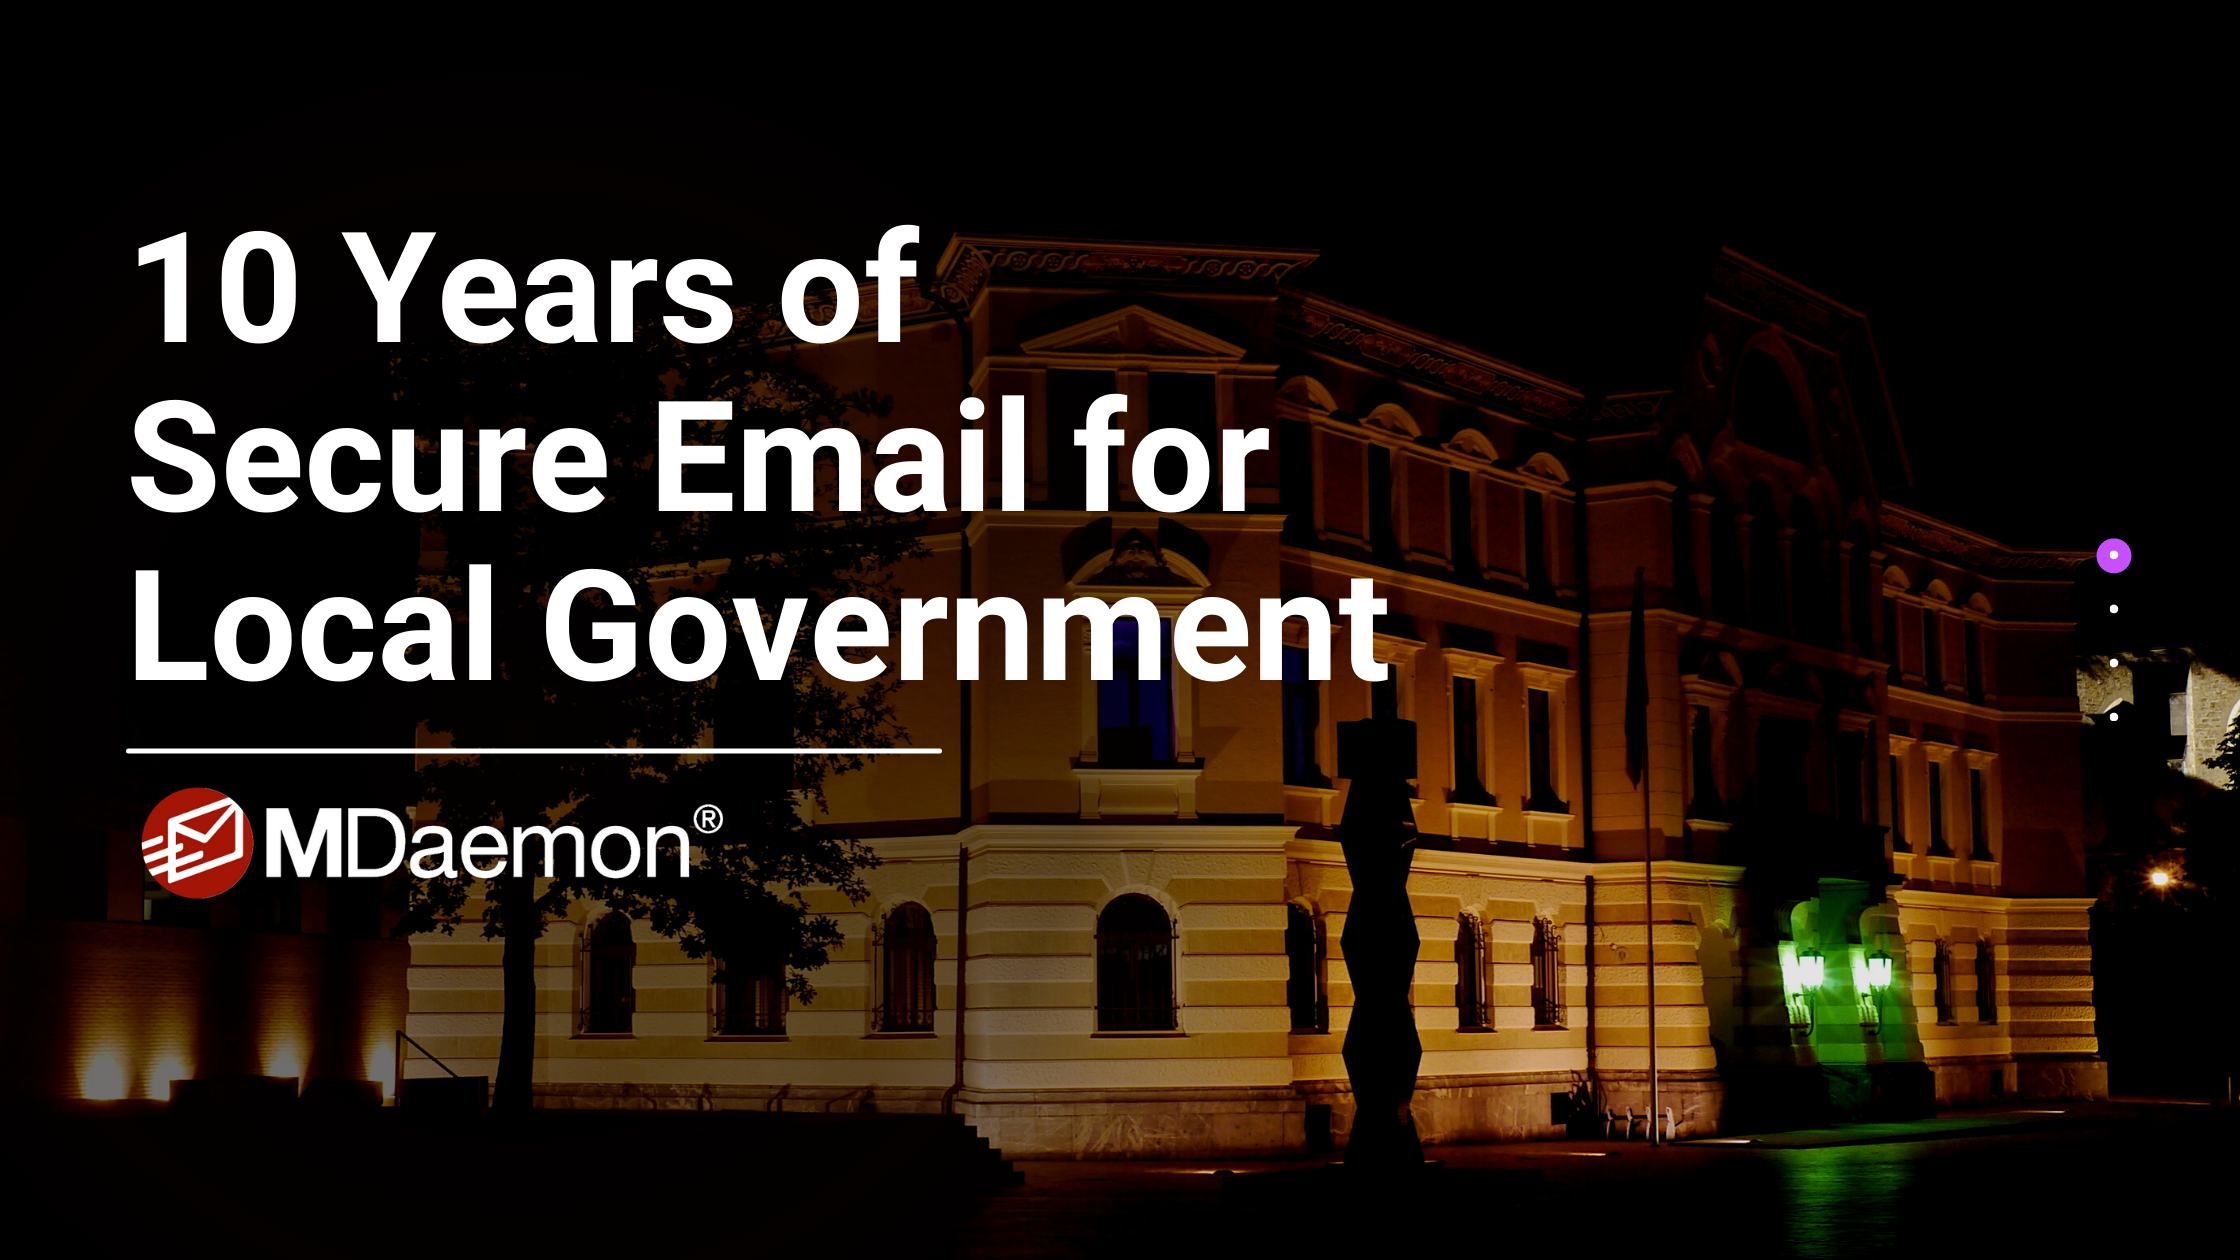 Secure-email-government